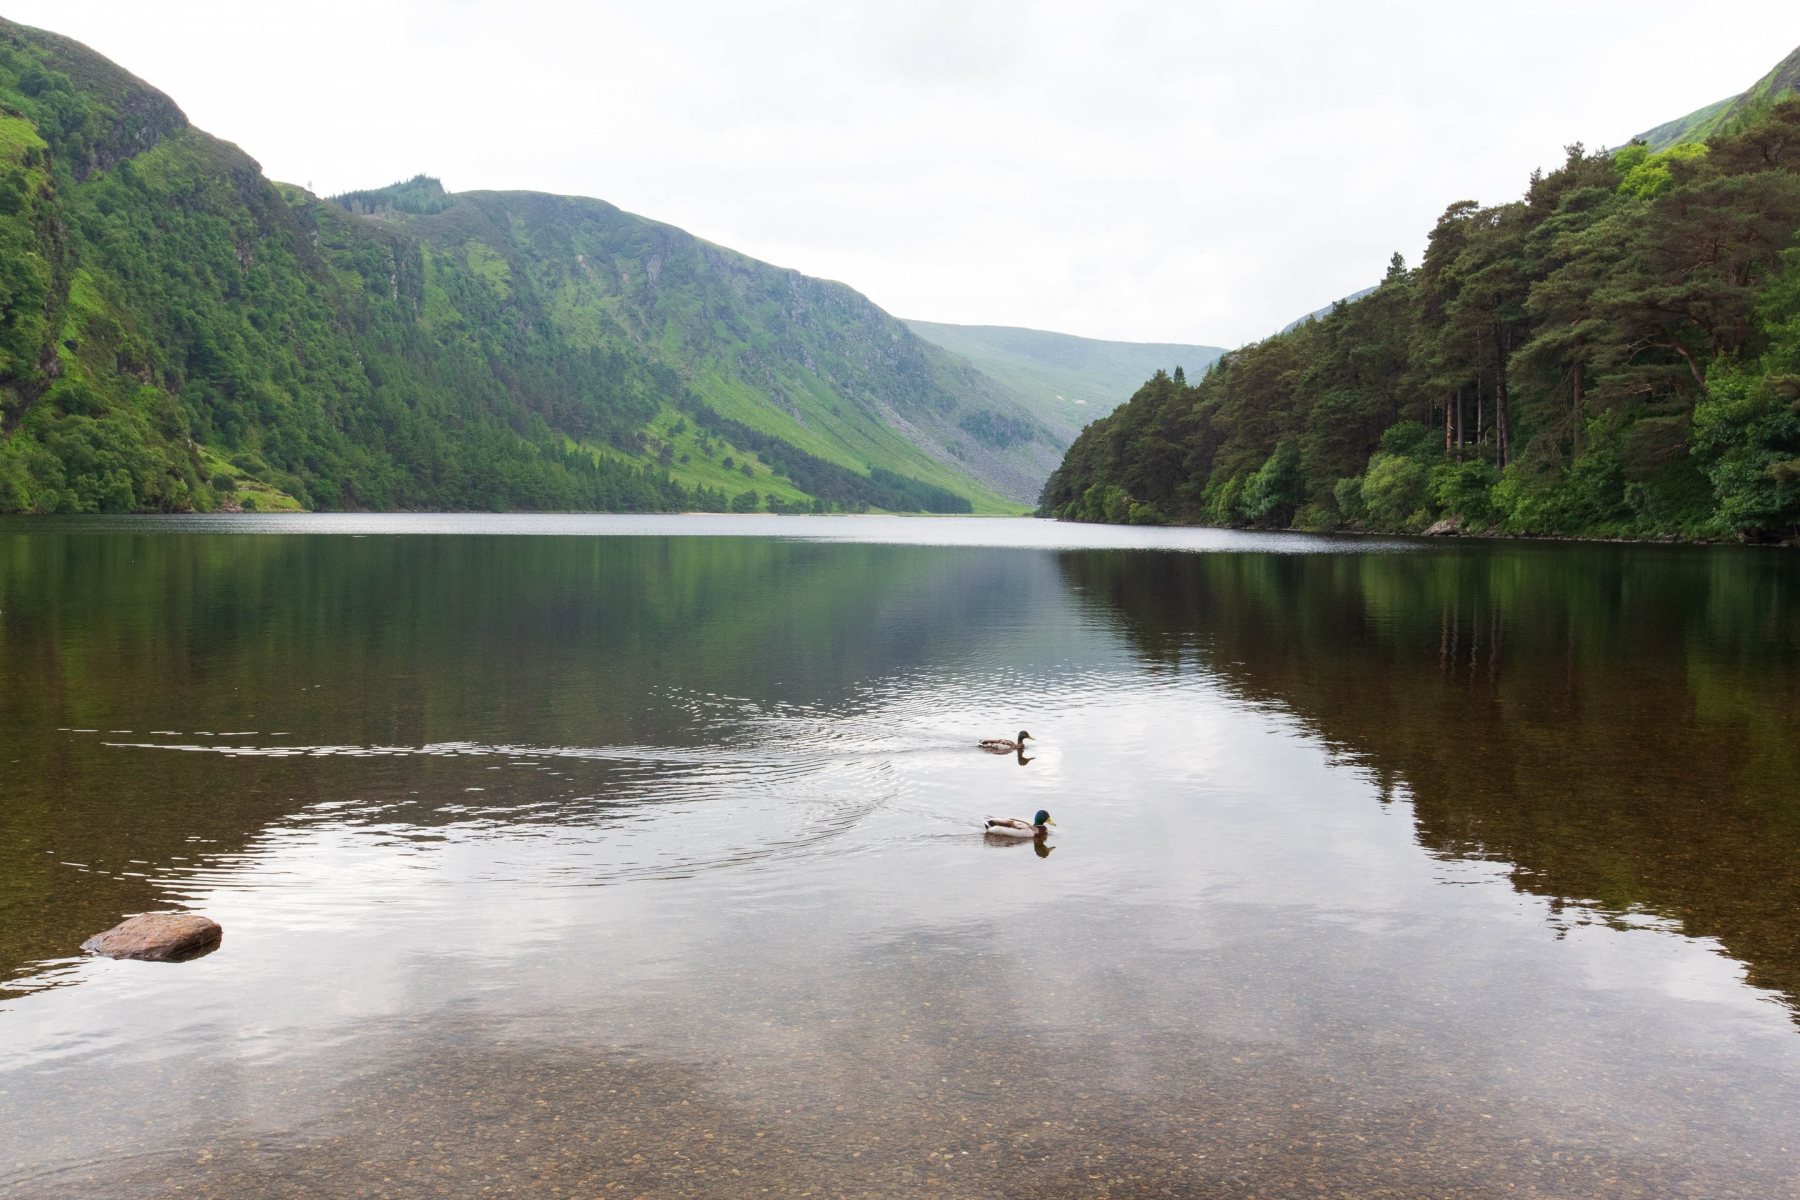 """GlendaLough from Irish Gleann Dá Loch, meaning """"Valley of two lakes"""". Here we can see the larger of the two lakes (The Upper Lake)"""